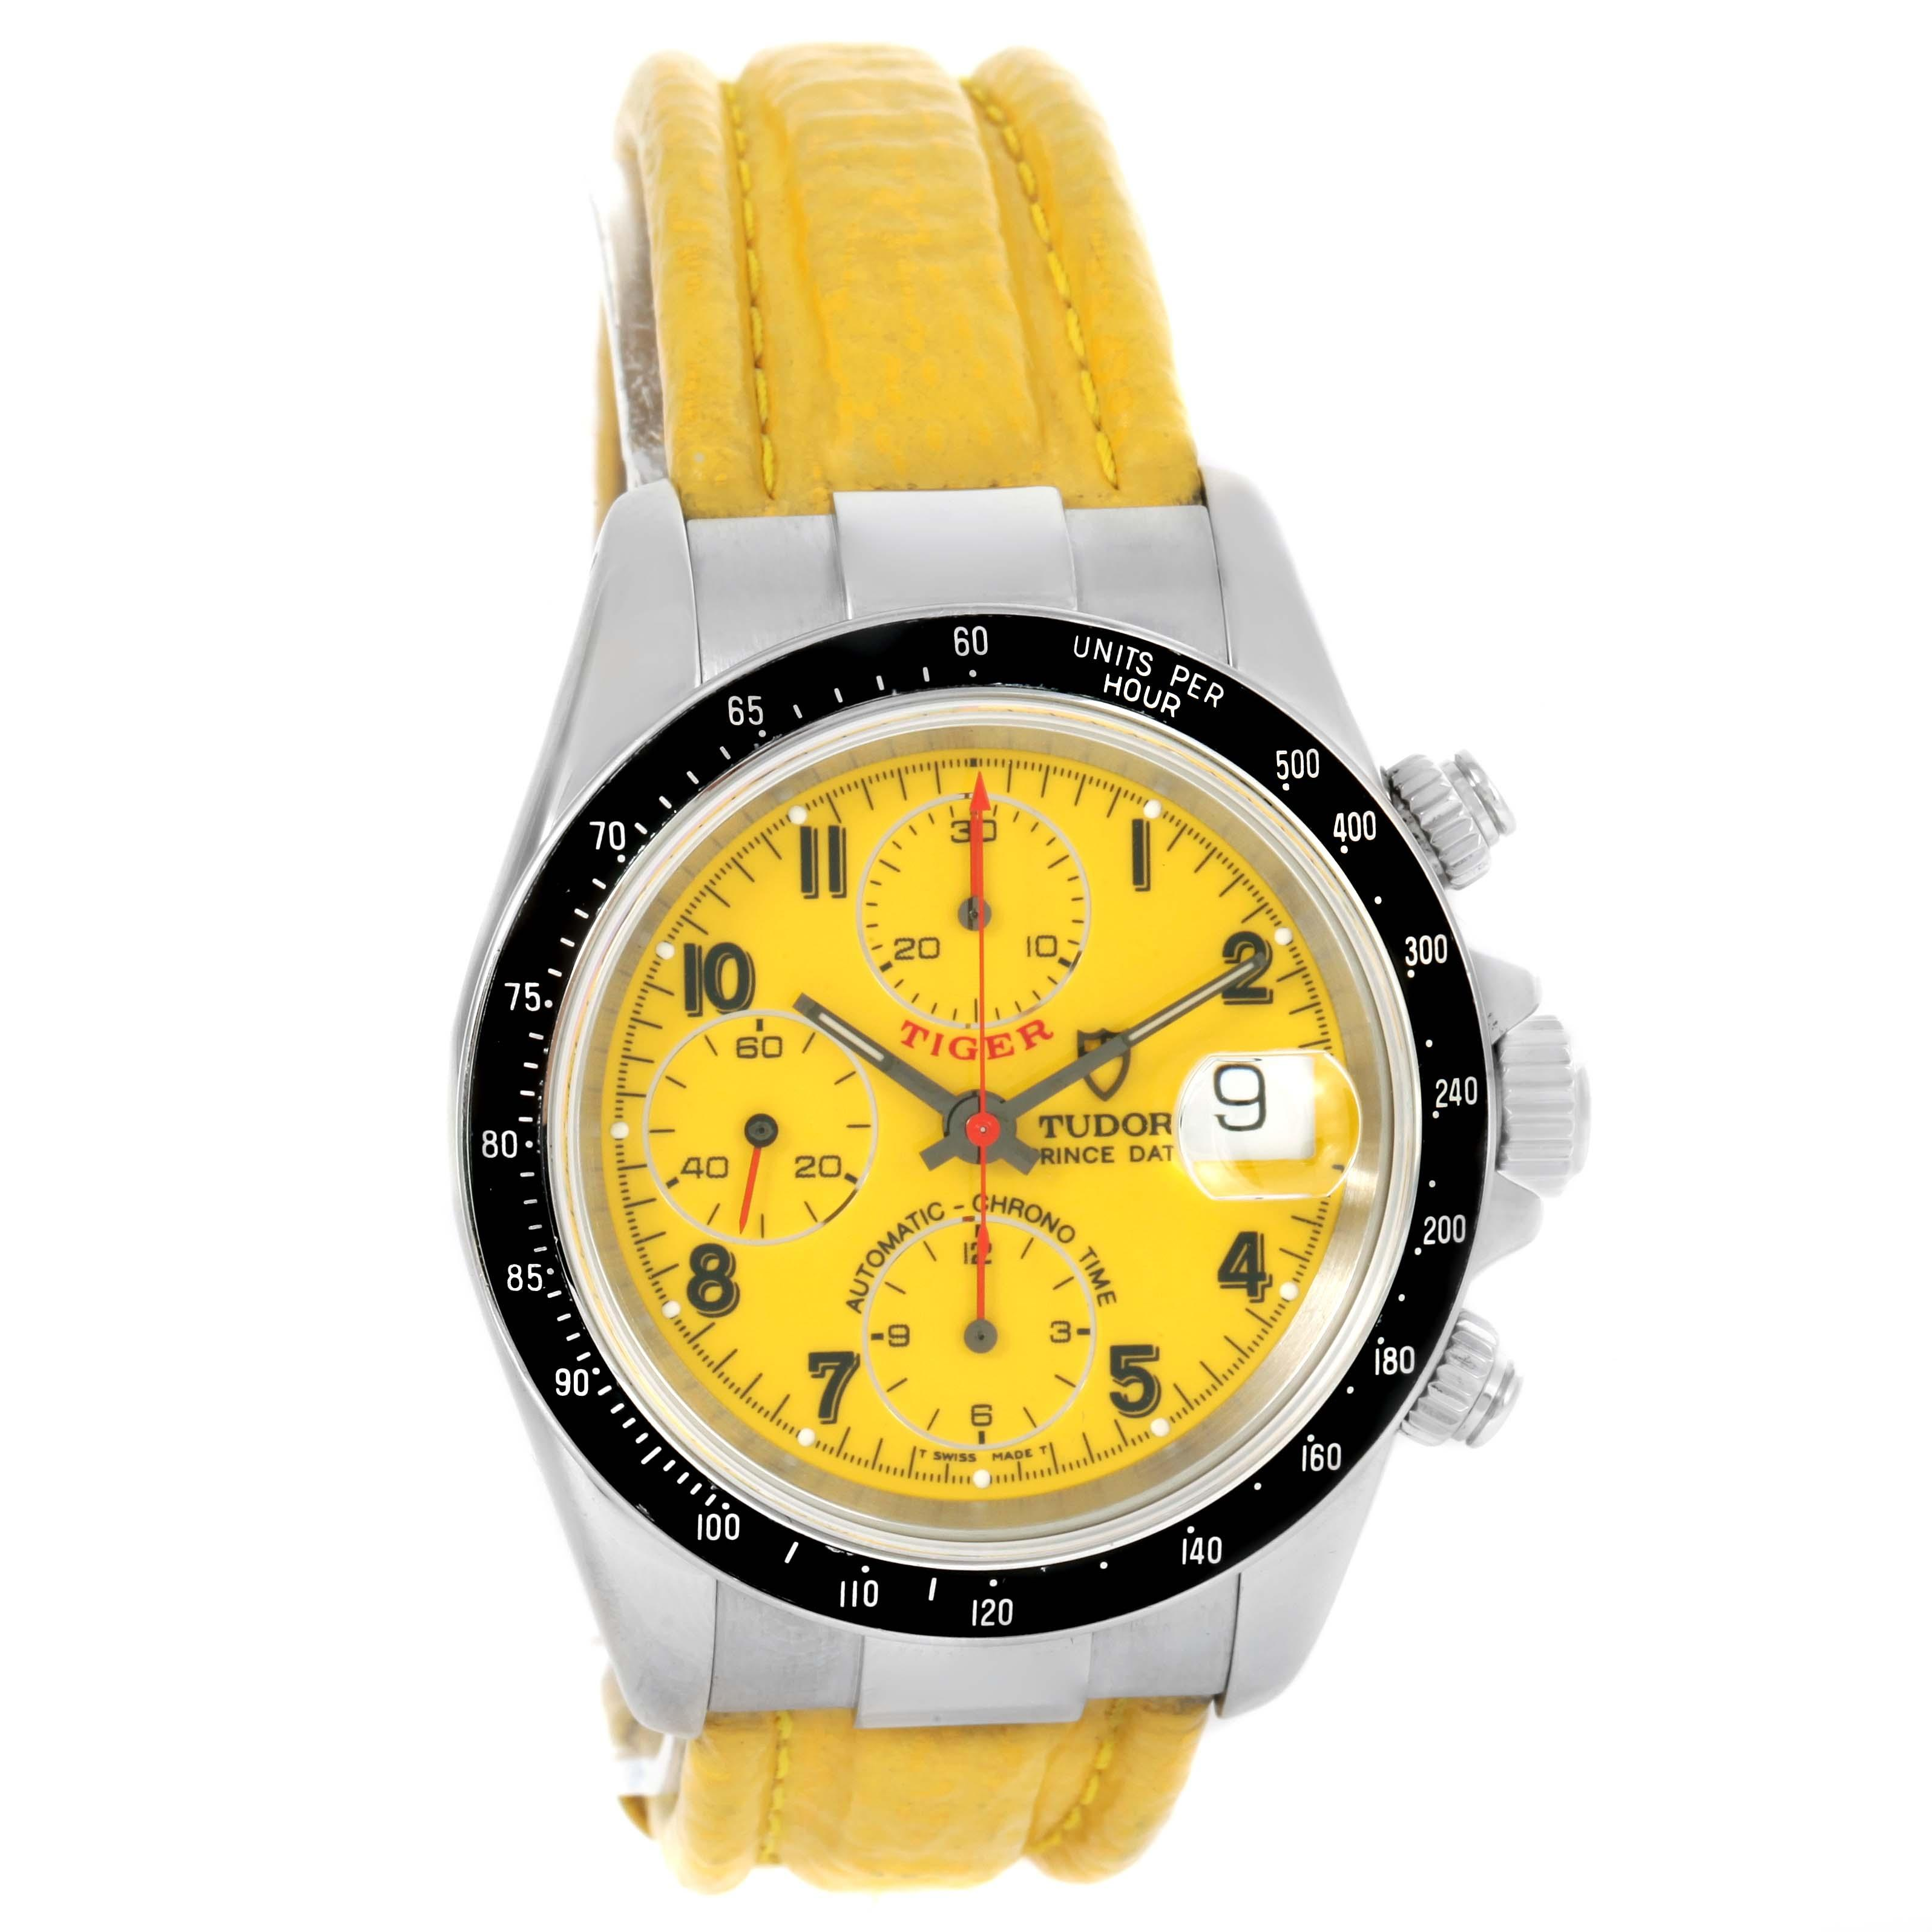 tudor watches dating Tudor watches on sale at jomashopcom low prices, large selection plus get free fast shipping on all orders over $100 - on sale:.